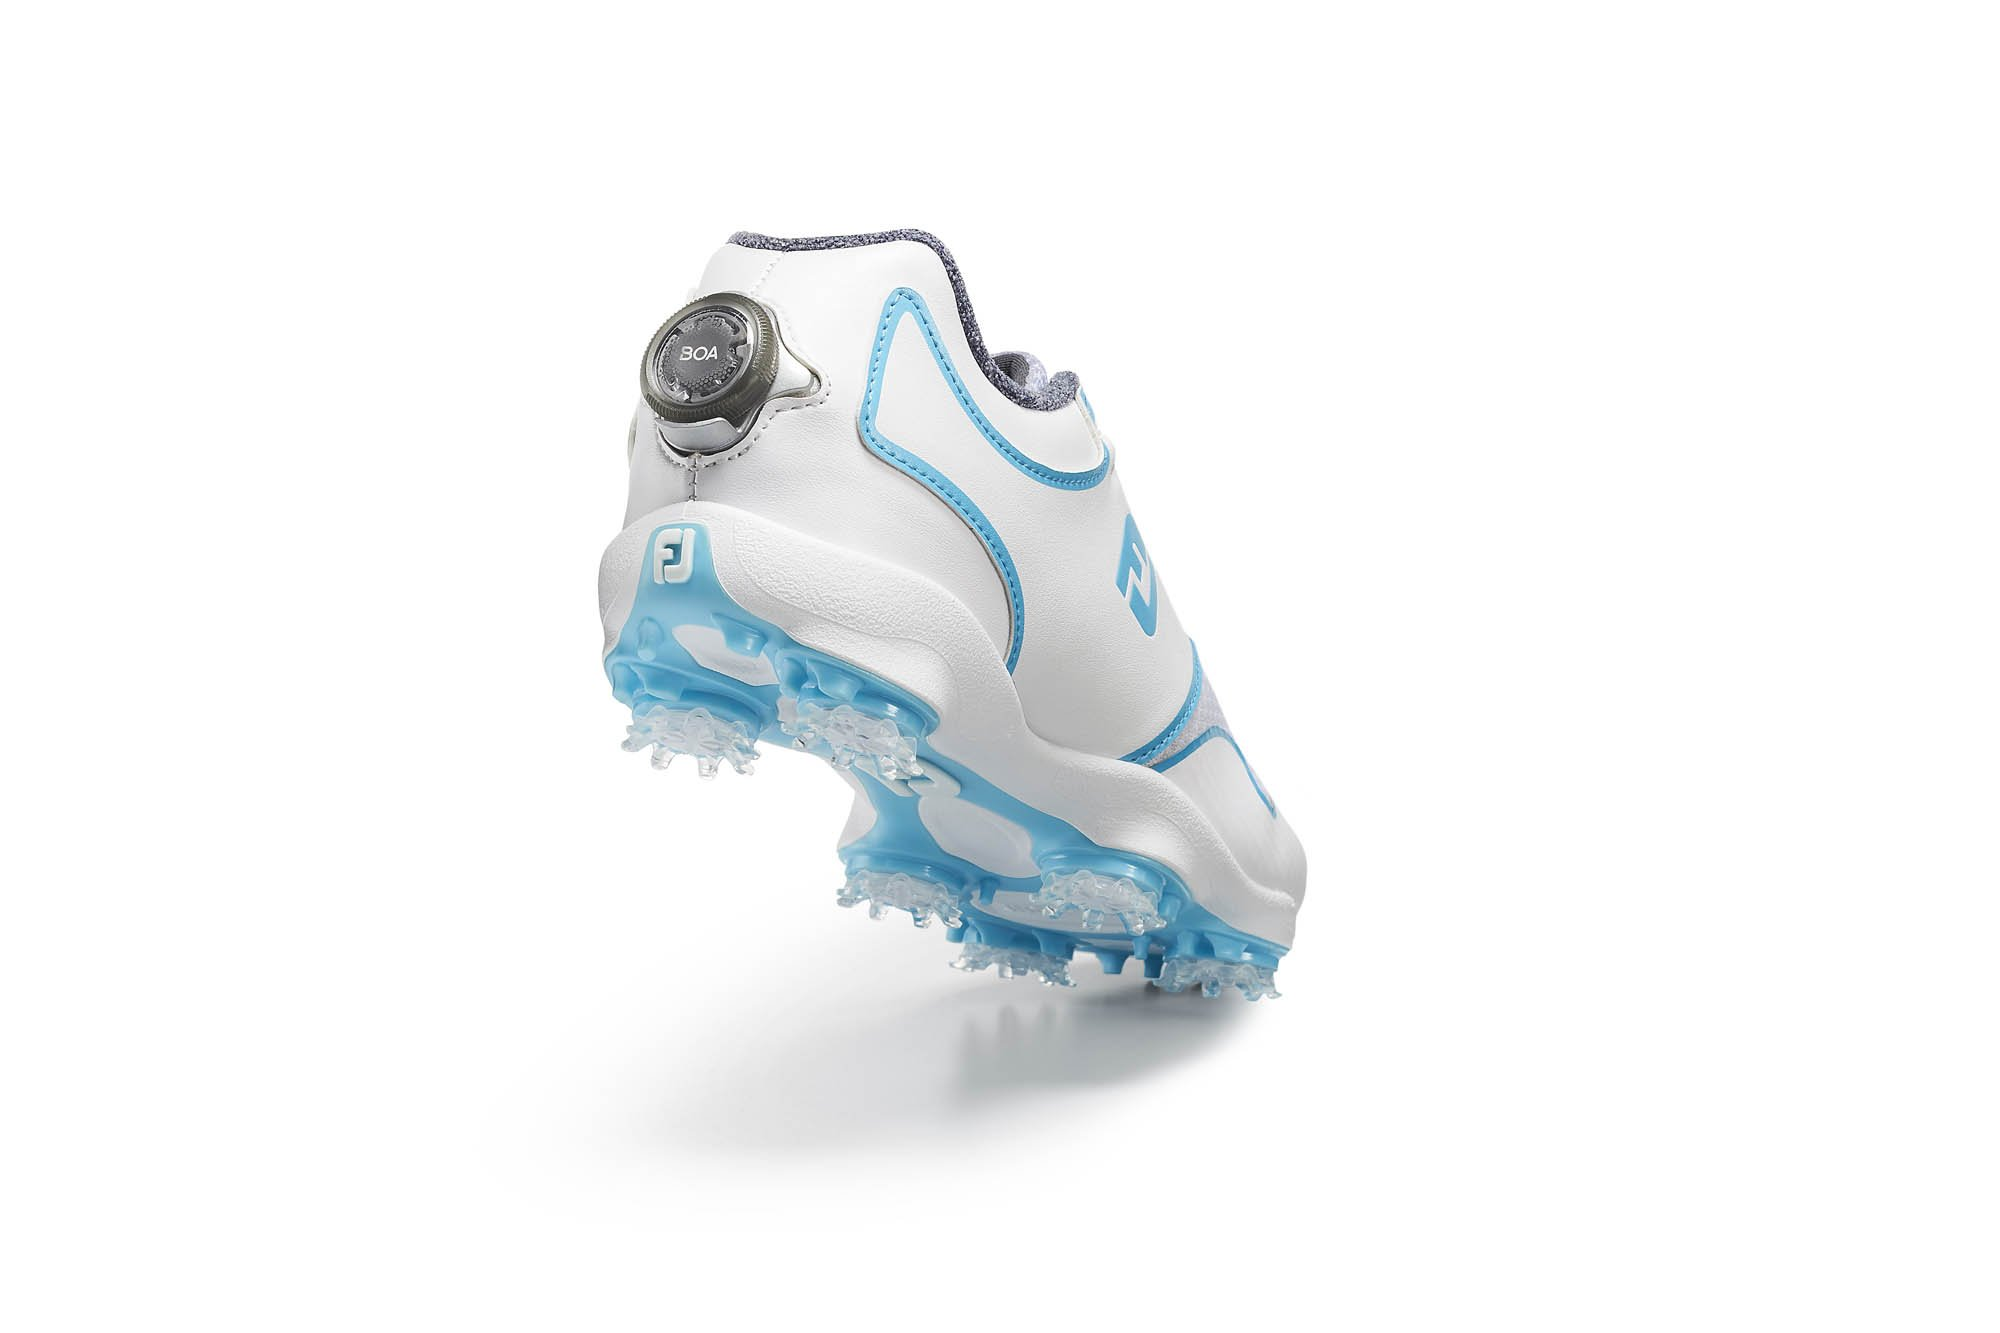 Product photography - A FJ white and blue shoe with the BOA running shoe